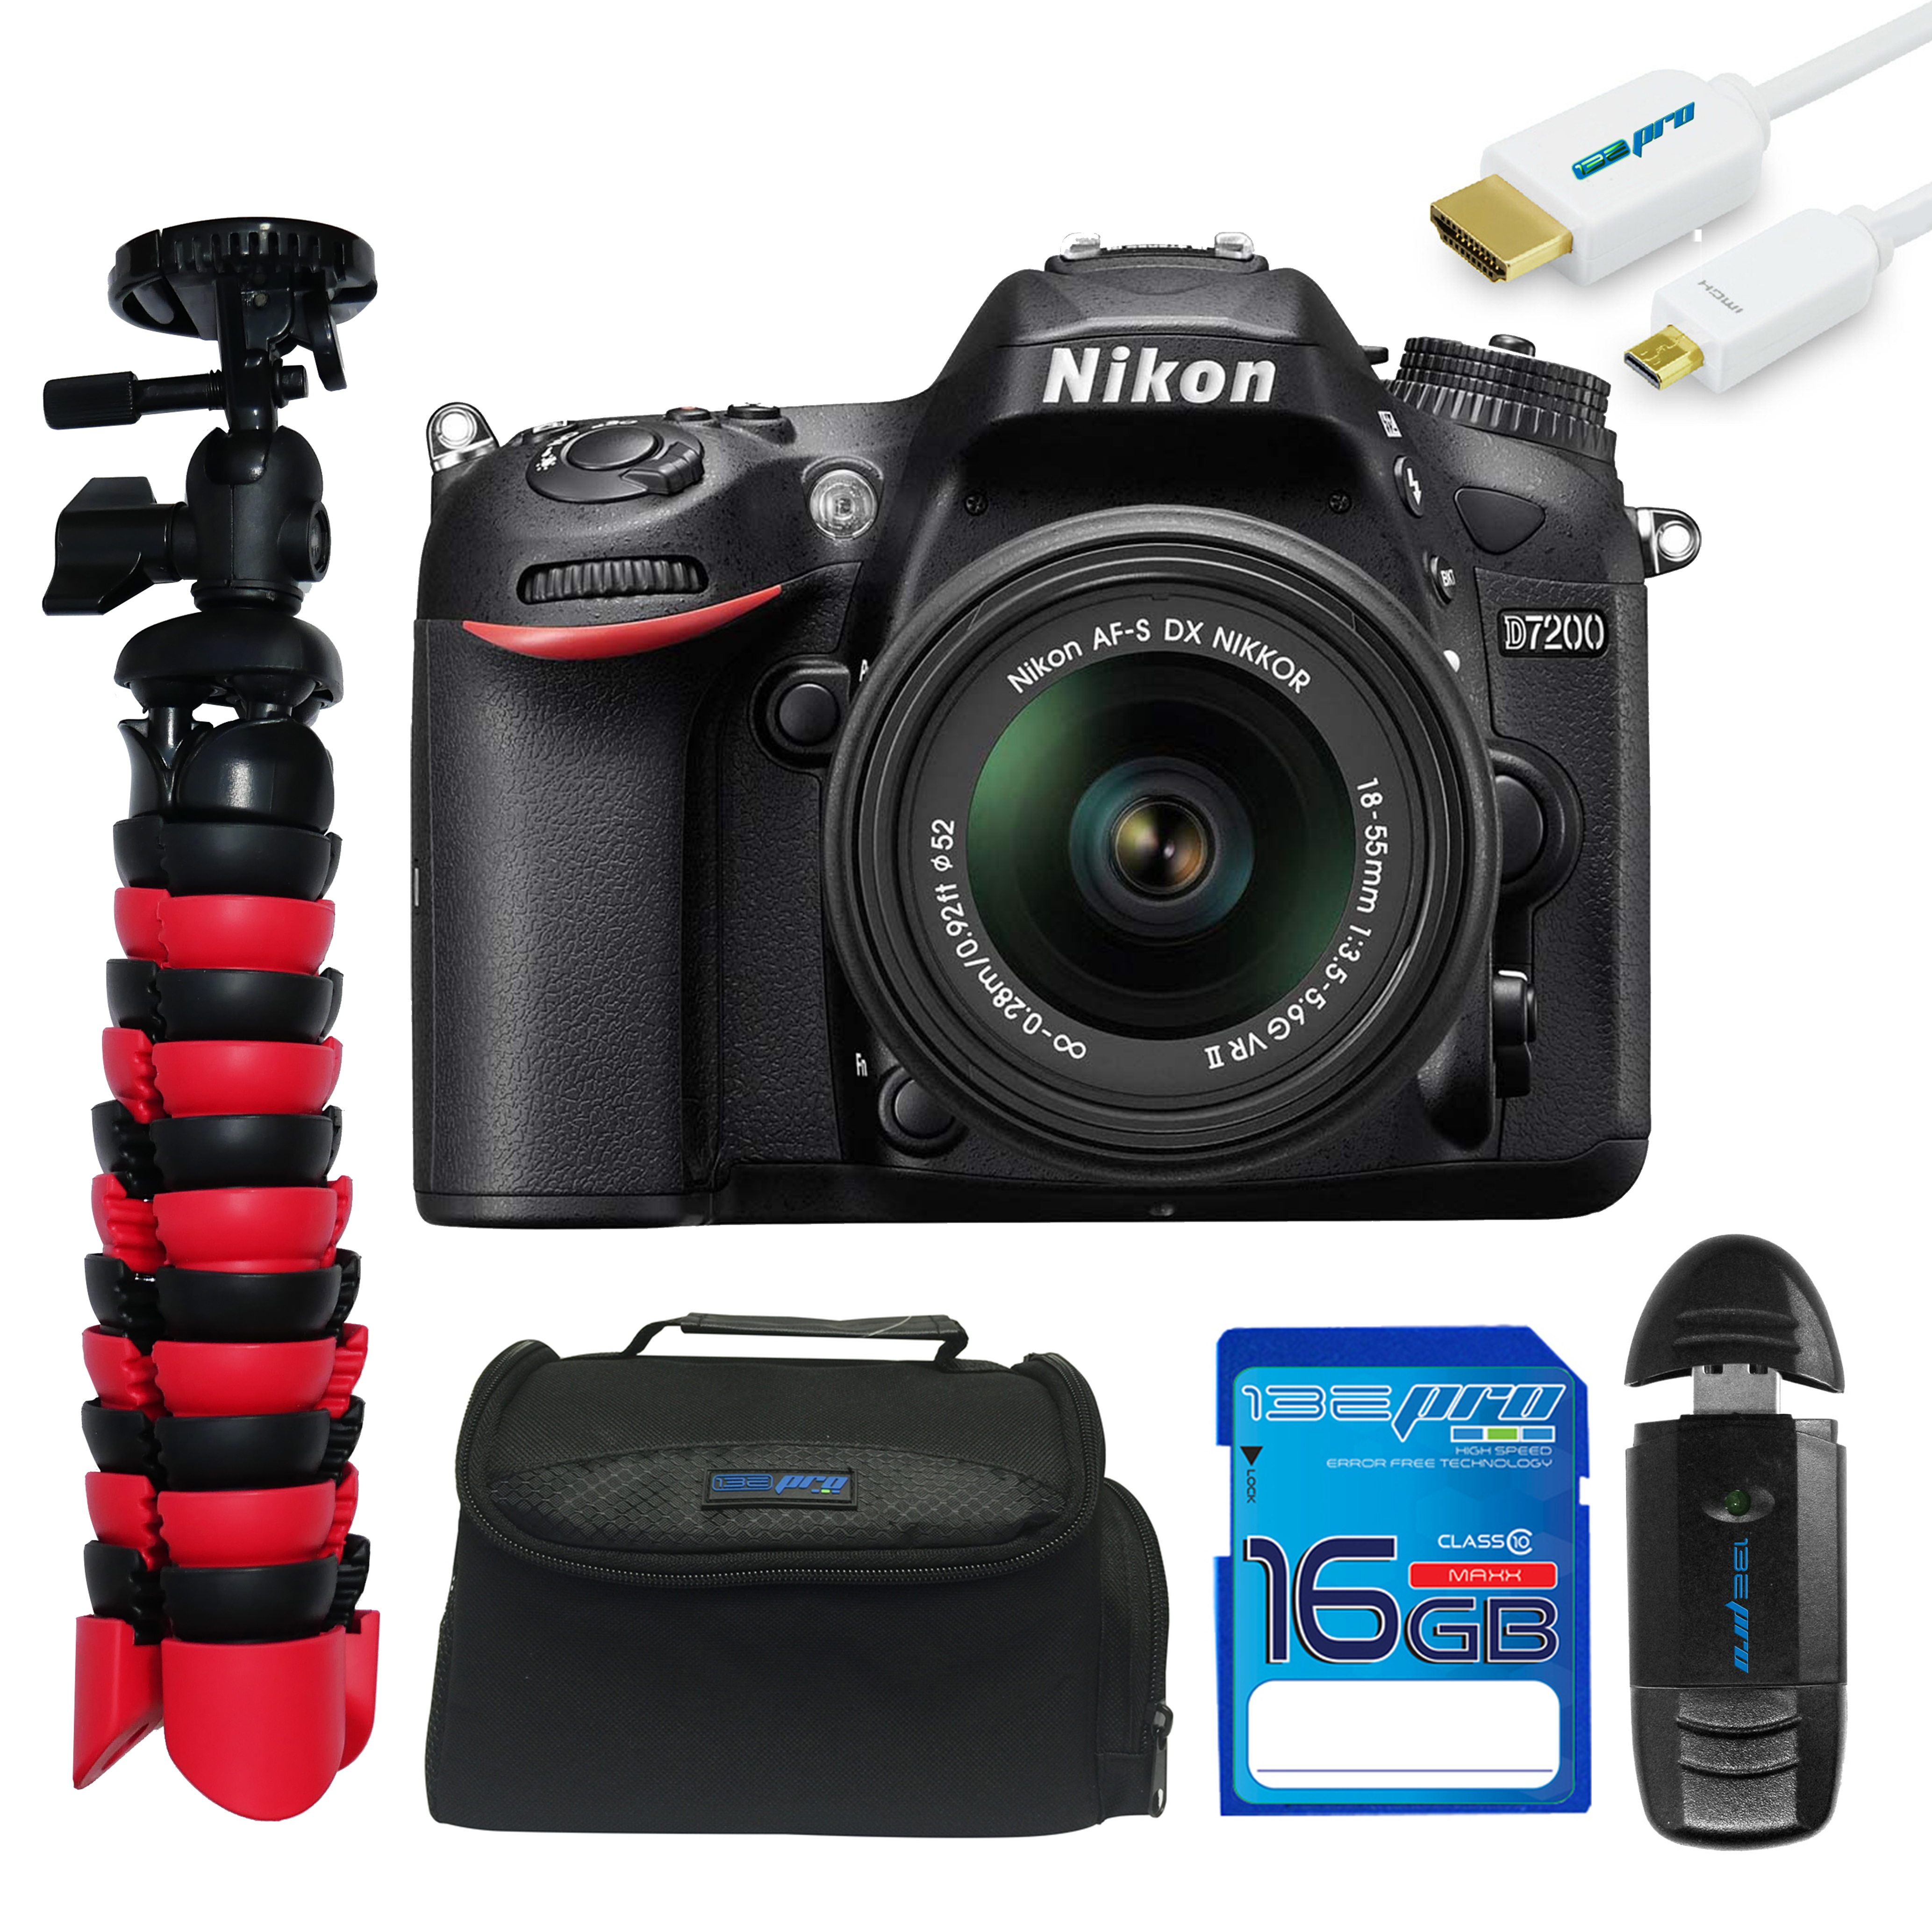 Nikon D7200 DSLR Camera with 18-55mm Lens + Pixi Essentials Kit